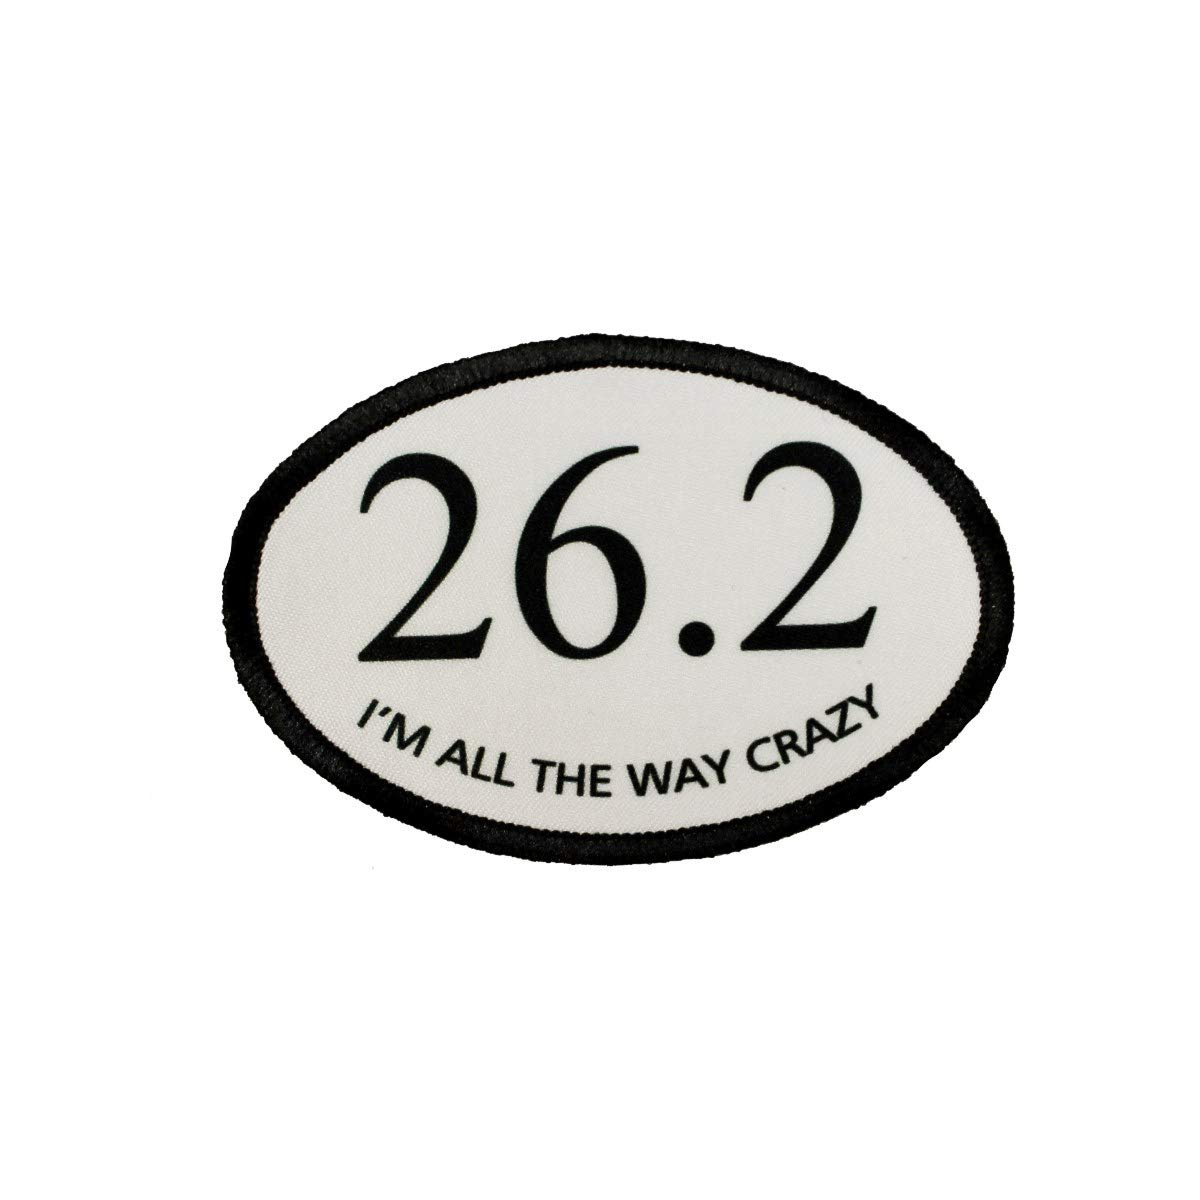 26.2 I'm All The Way Crazy Patch Marathon Running Embroidered Iron On Applique